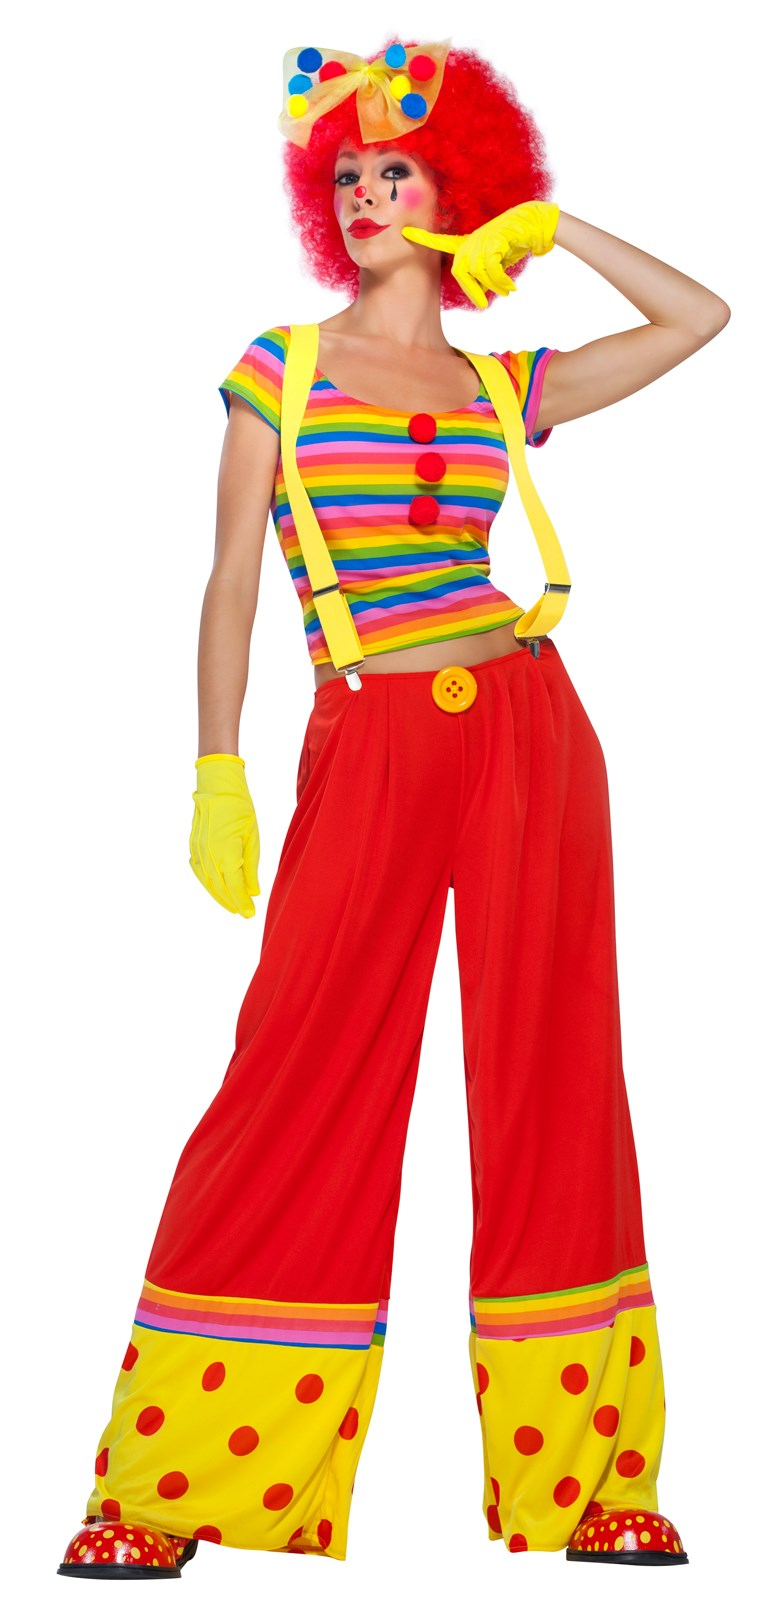 Moppie The Clown – Adult Costume